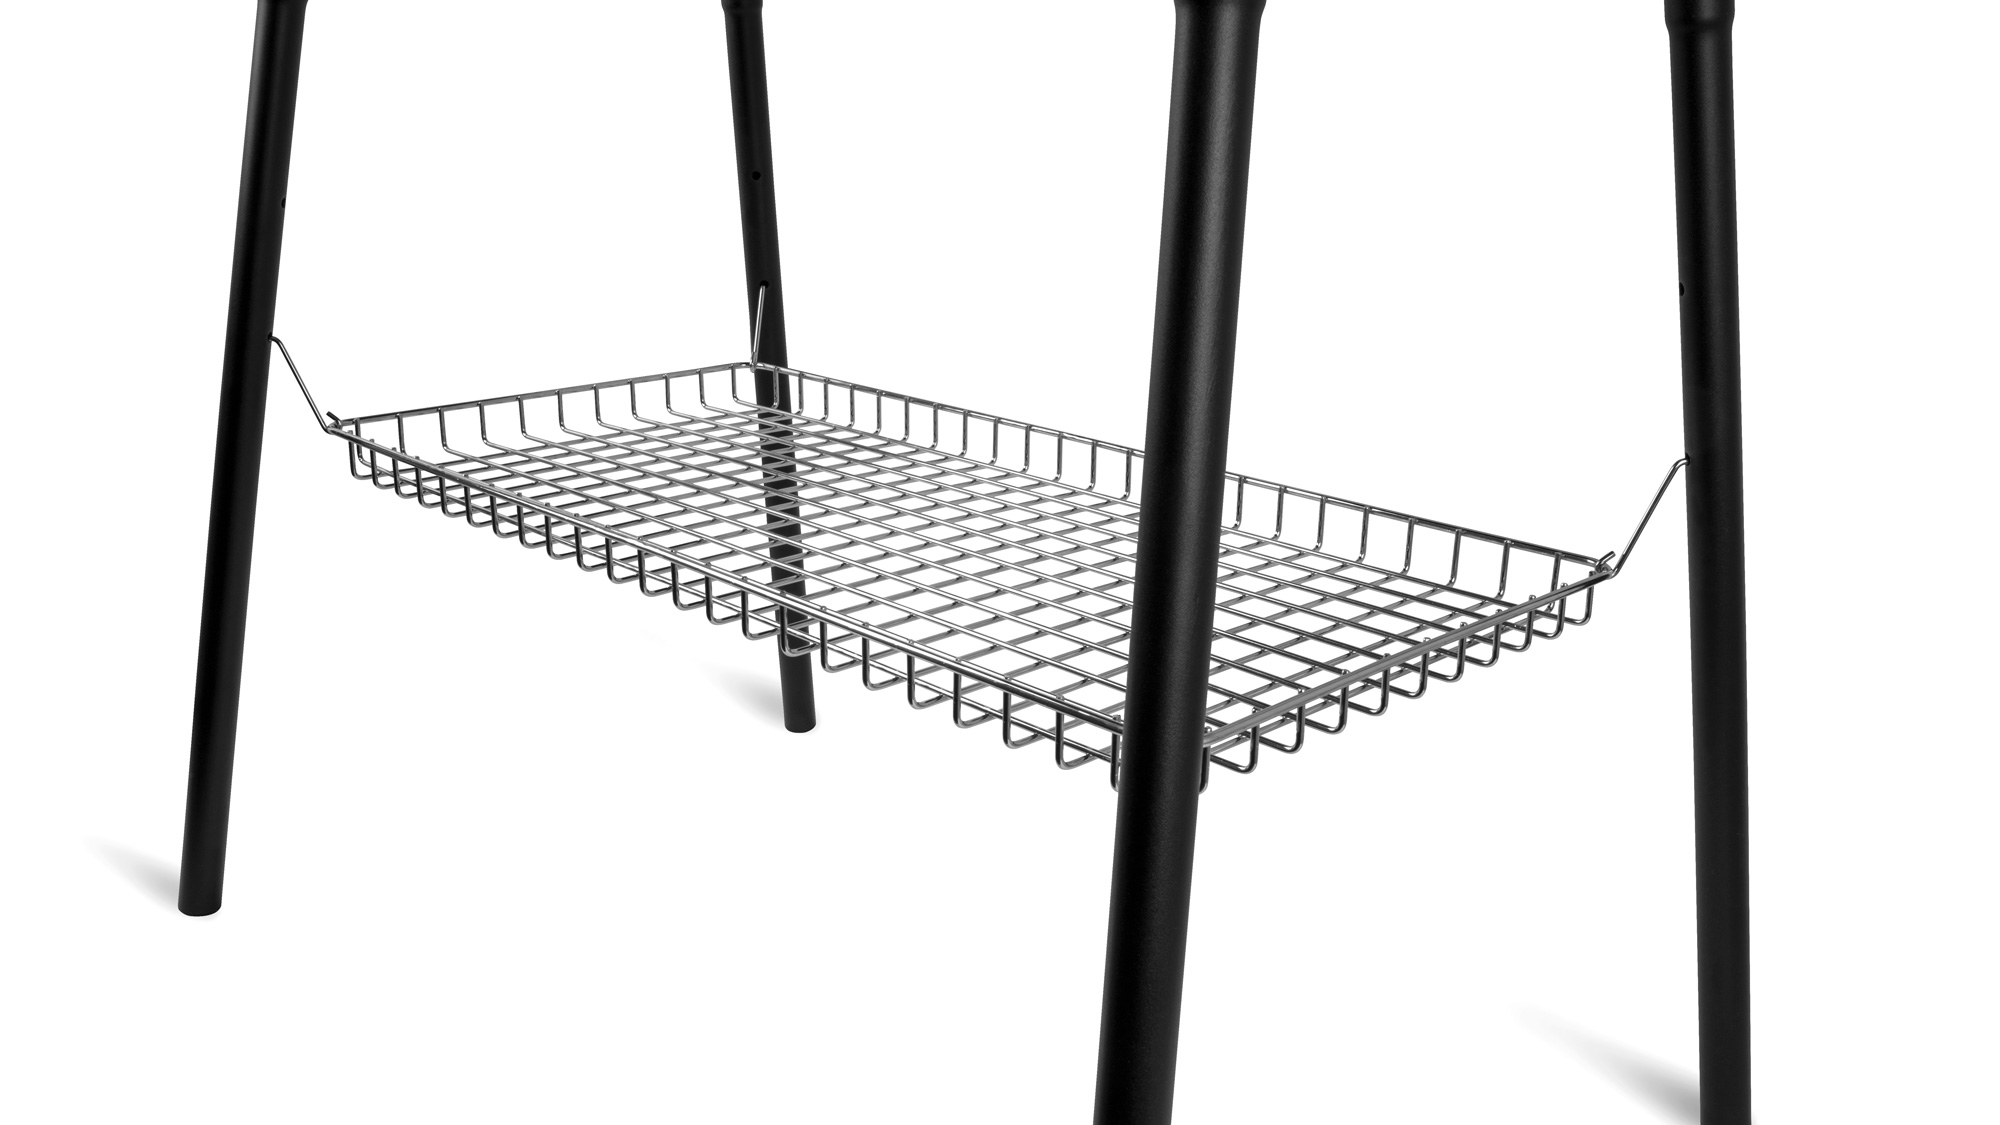 Petromax_Ablagekorb-fuer-Feuertopf-Tisch-fe90-montiert_Grid-Tray-for-Dutch-Oven-Table-hooked_tray90